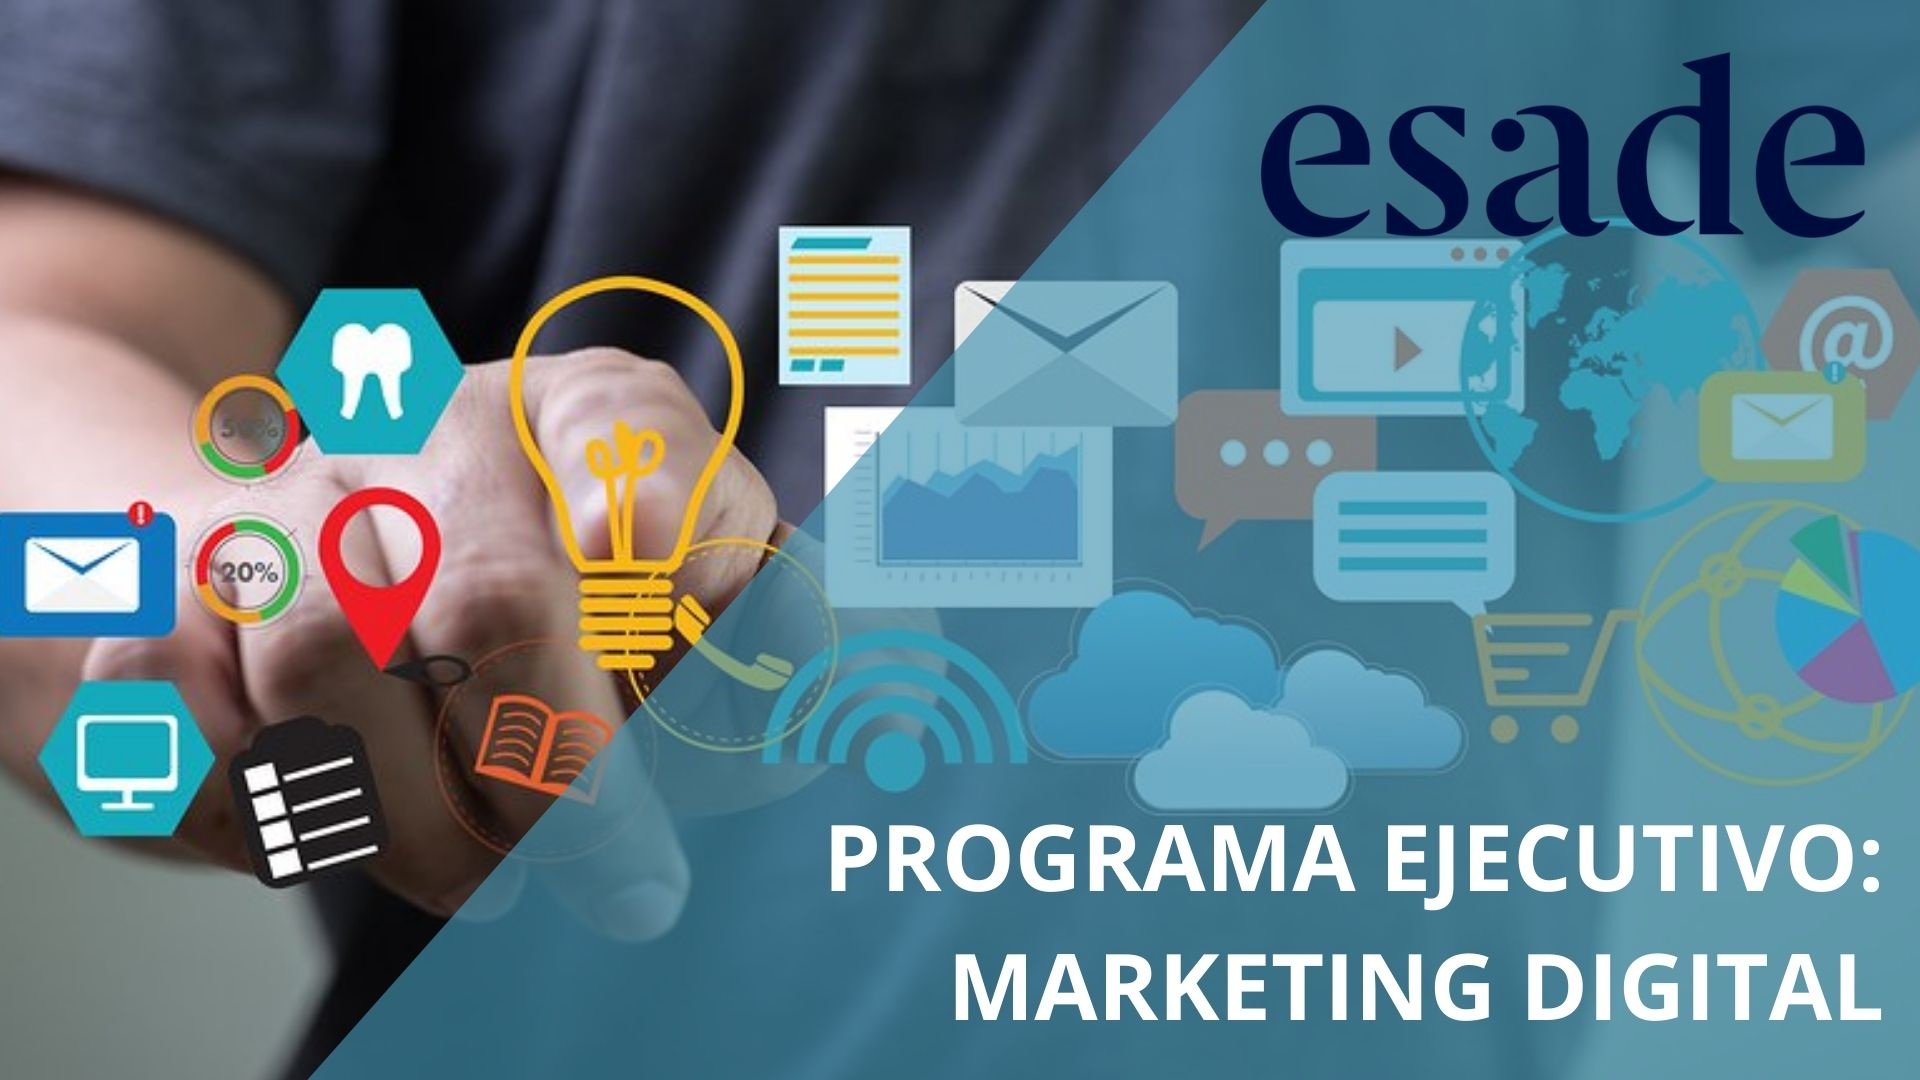 MARKETING DIGITAL ESADE - Cámara Comercio Murcia